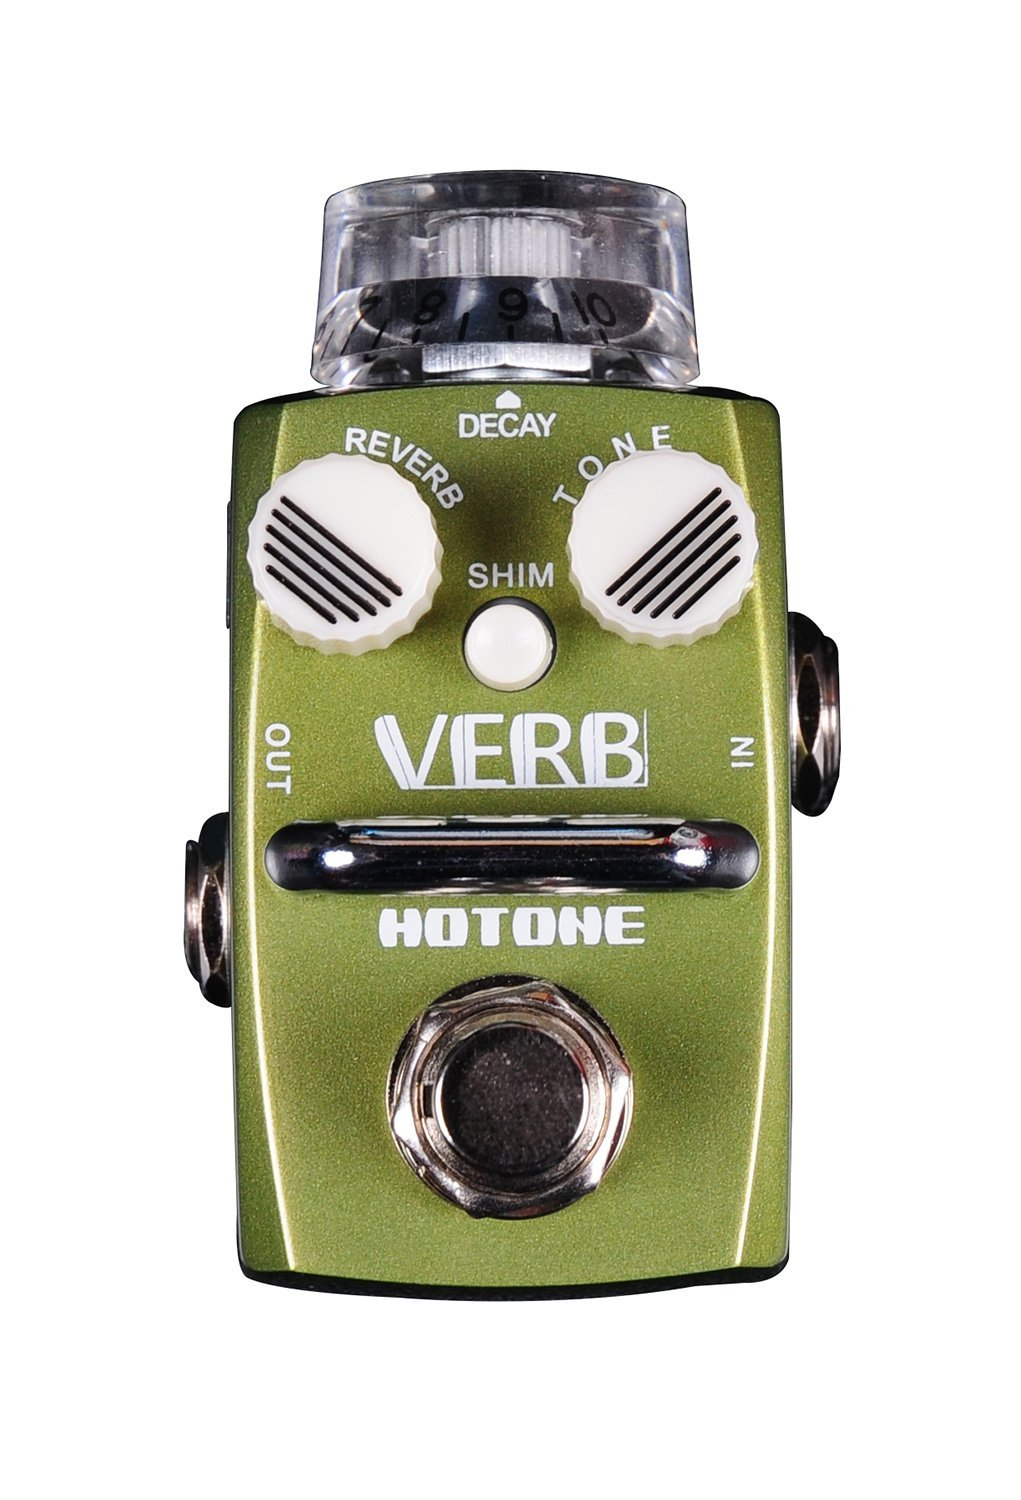 Hotone Skyline VERB Digital Reverb Guitar Stompbox with Transparent Top Knob (TPSRV1)